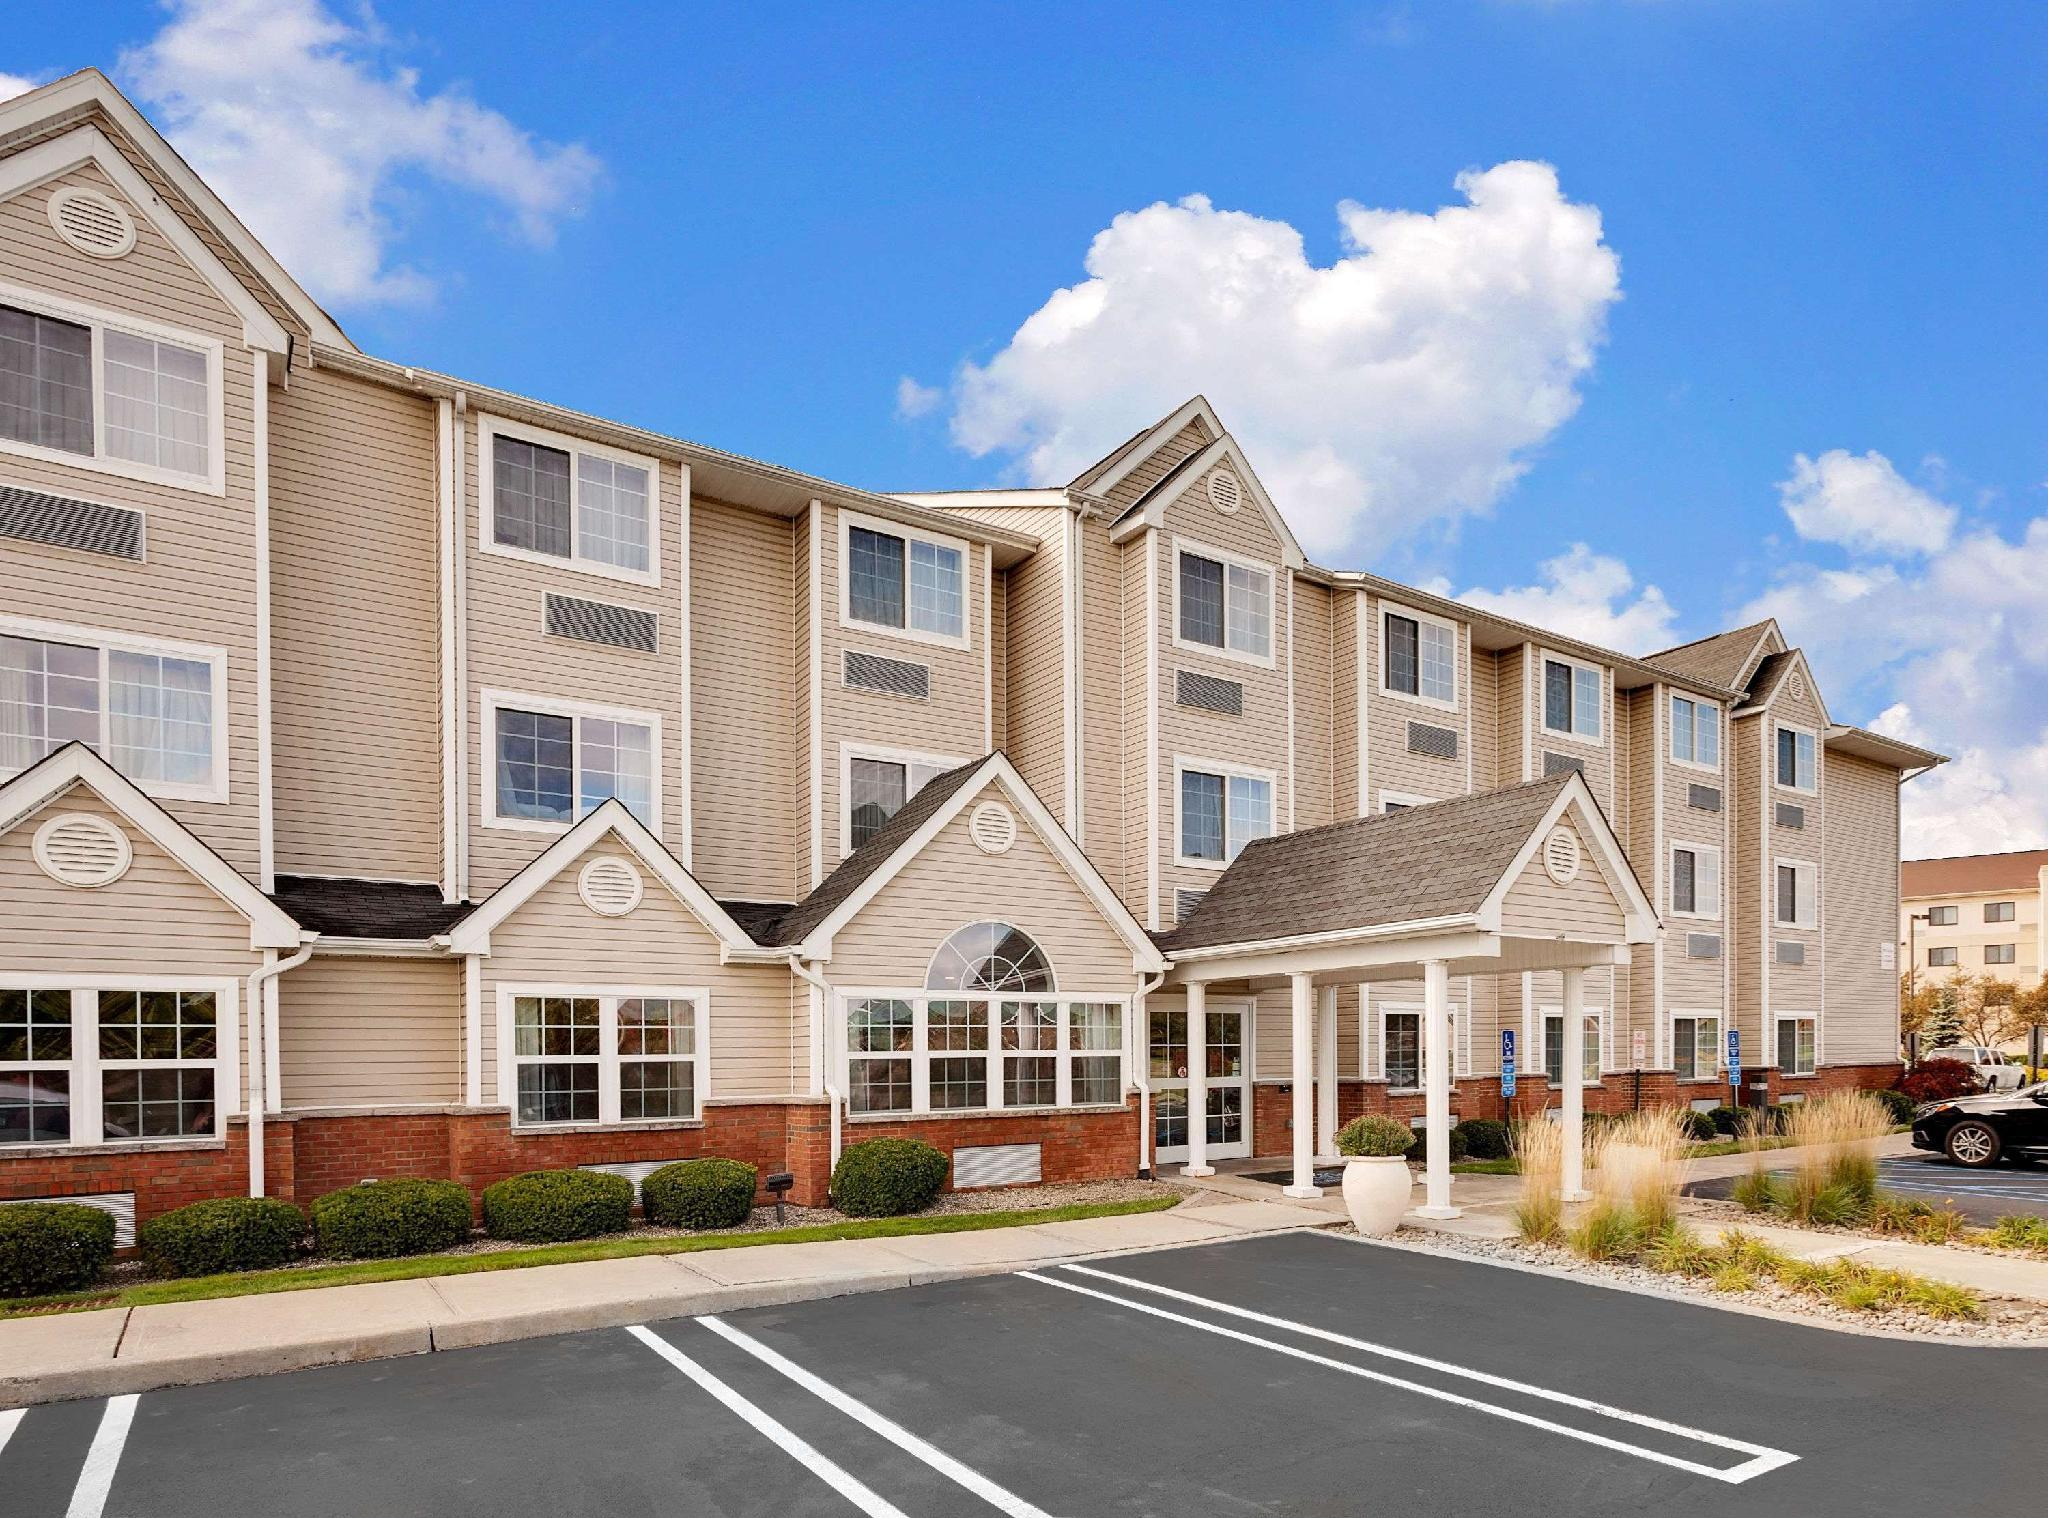 Microtel Inn And Suites By Wyndham Middletown